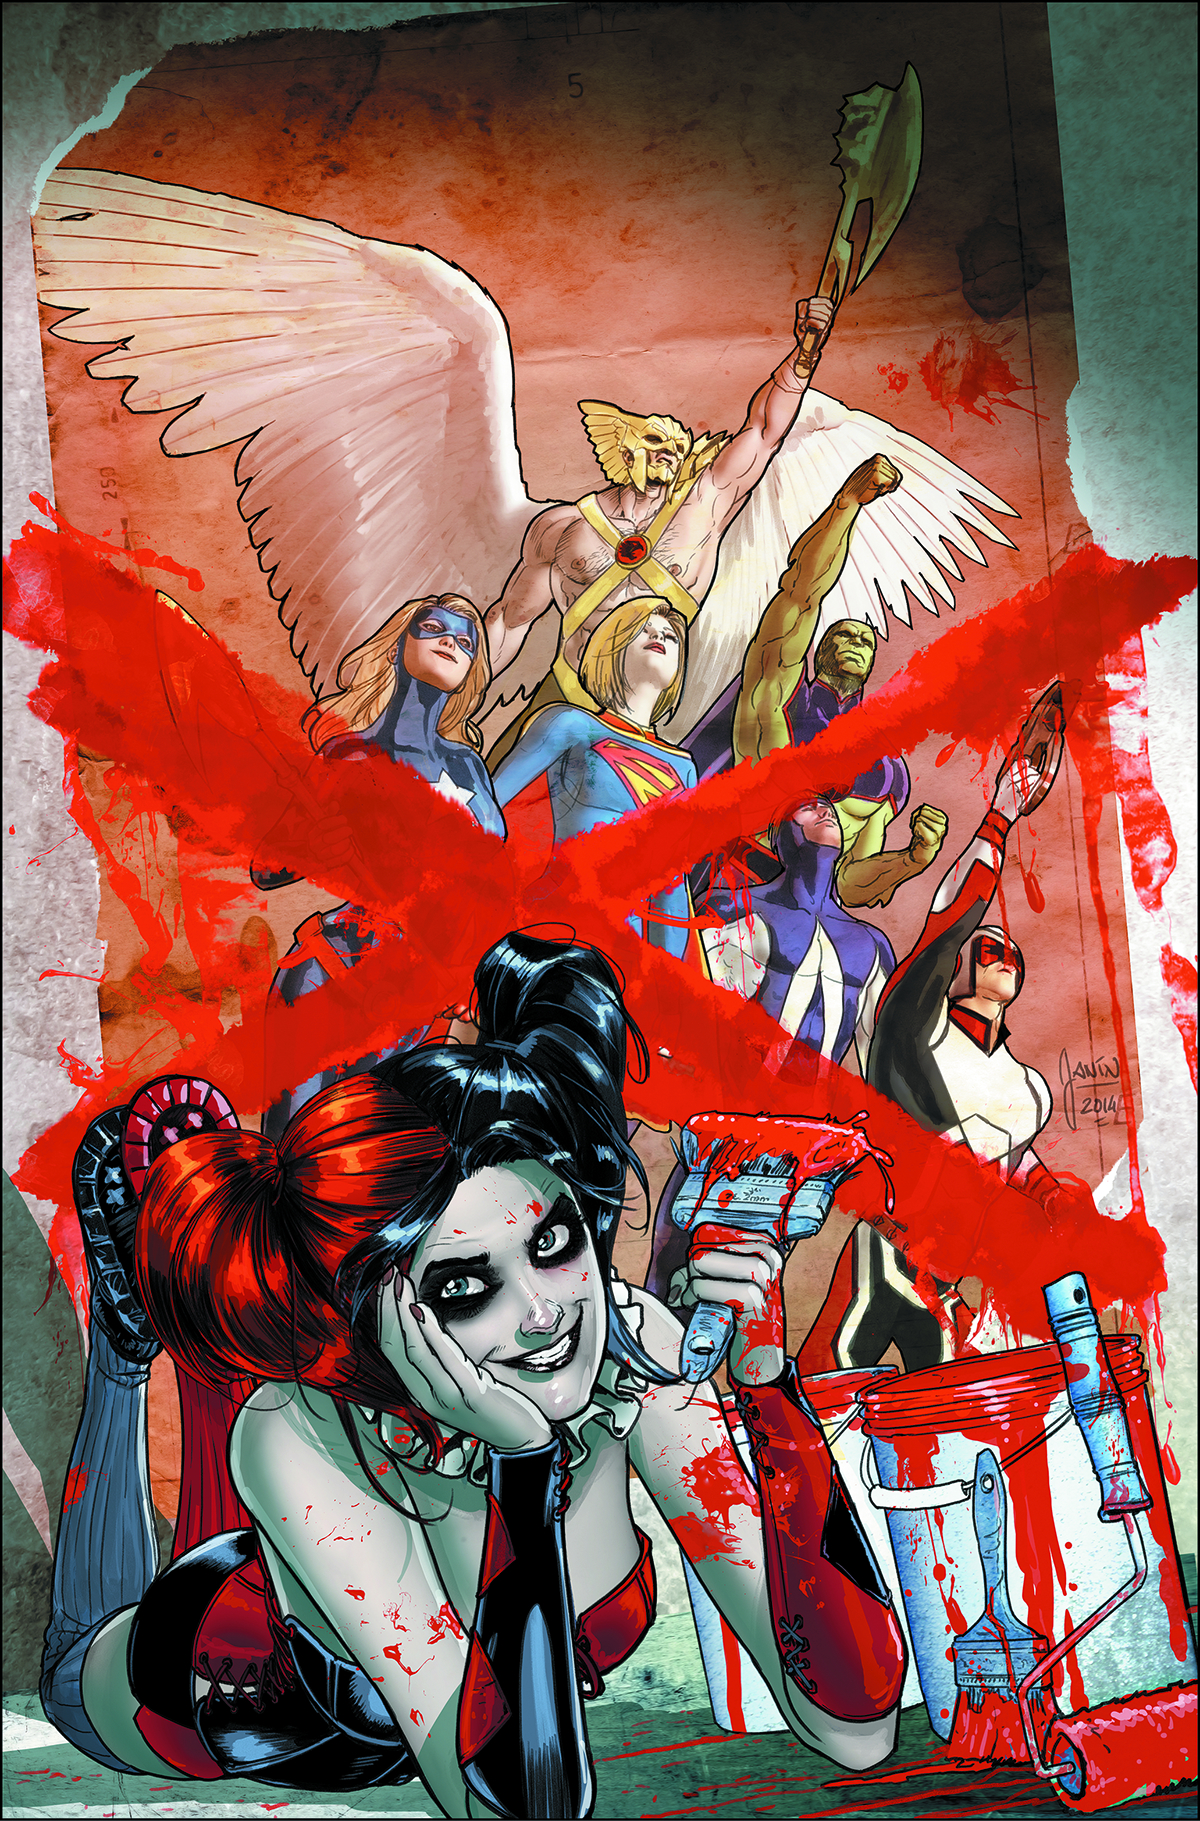 JUSTICE LEAGUE UNITED #9 HARLEY QUINN VAR ED